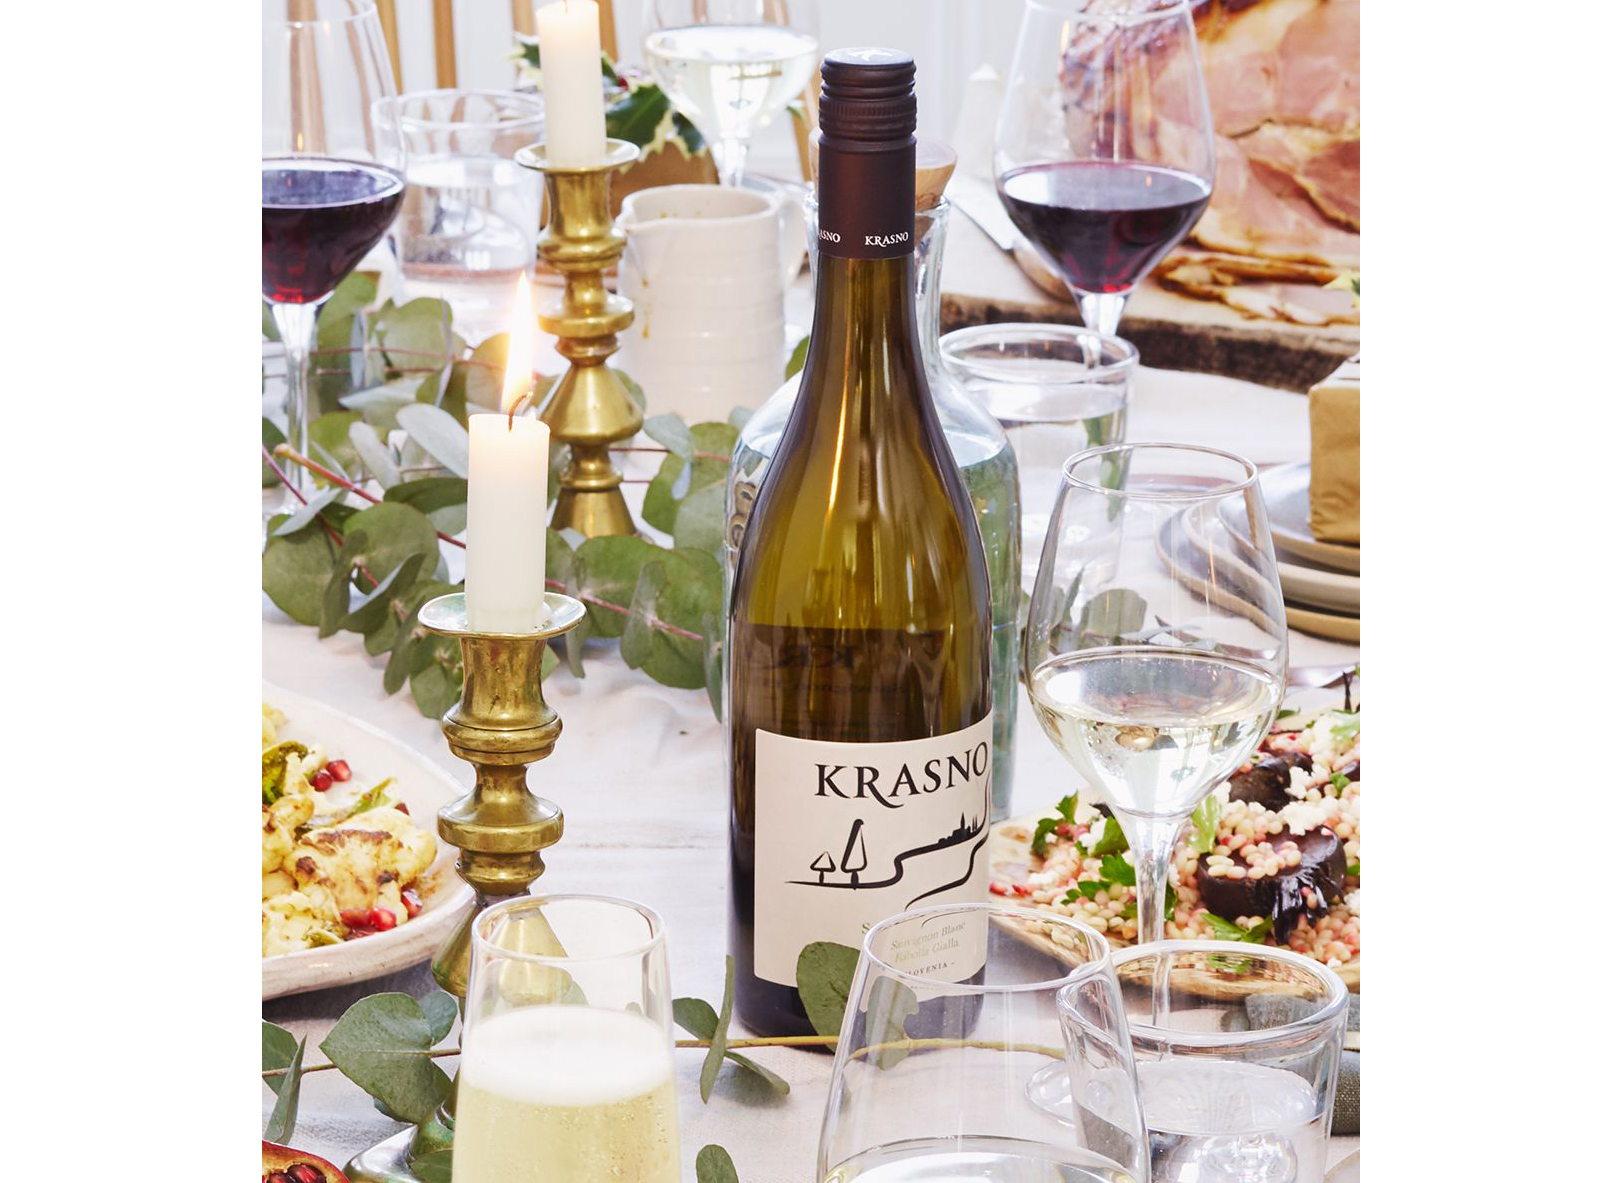 Bottle of white wine from Slovenia with food